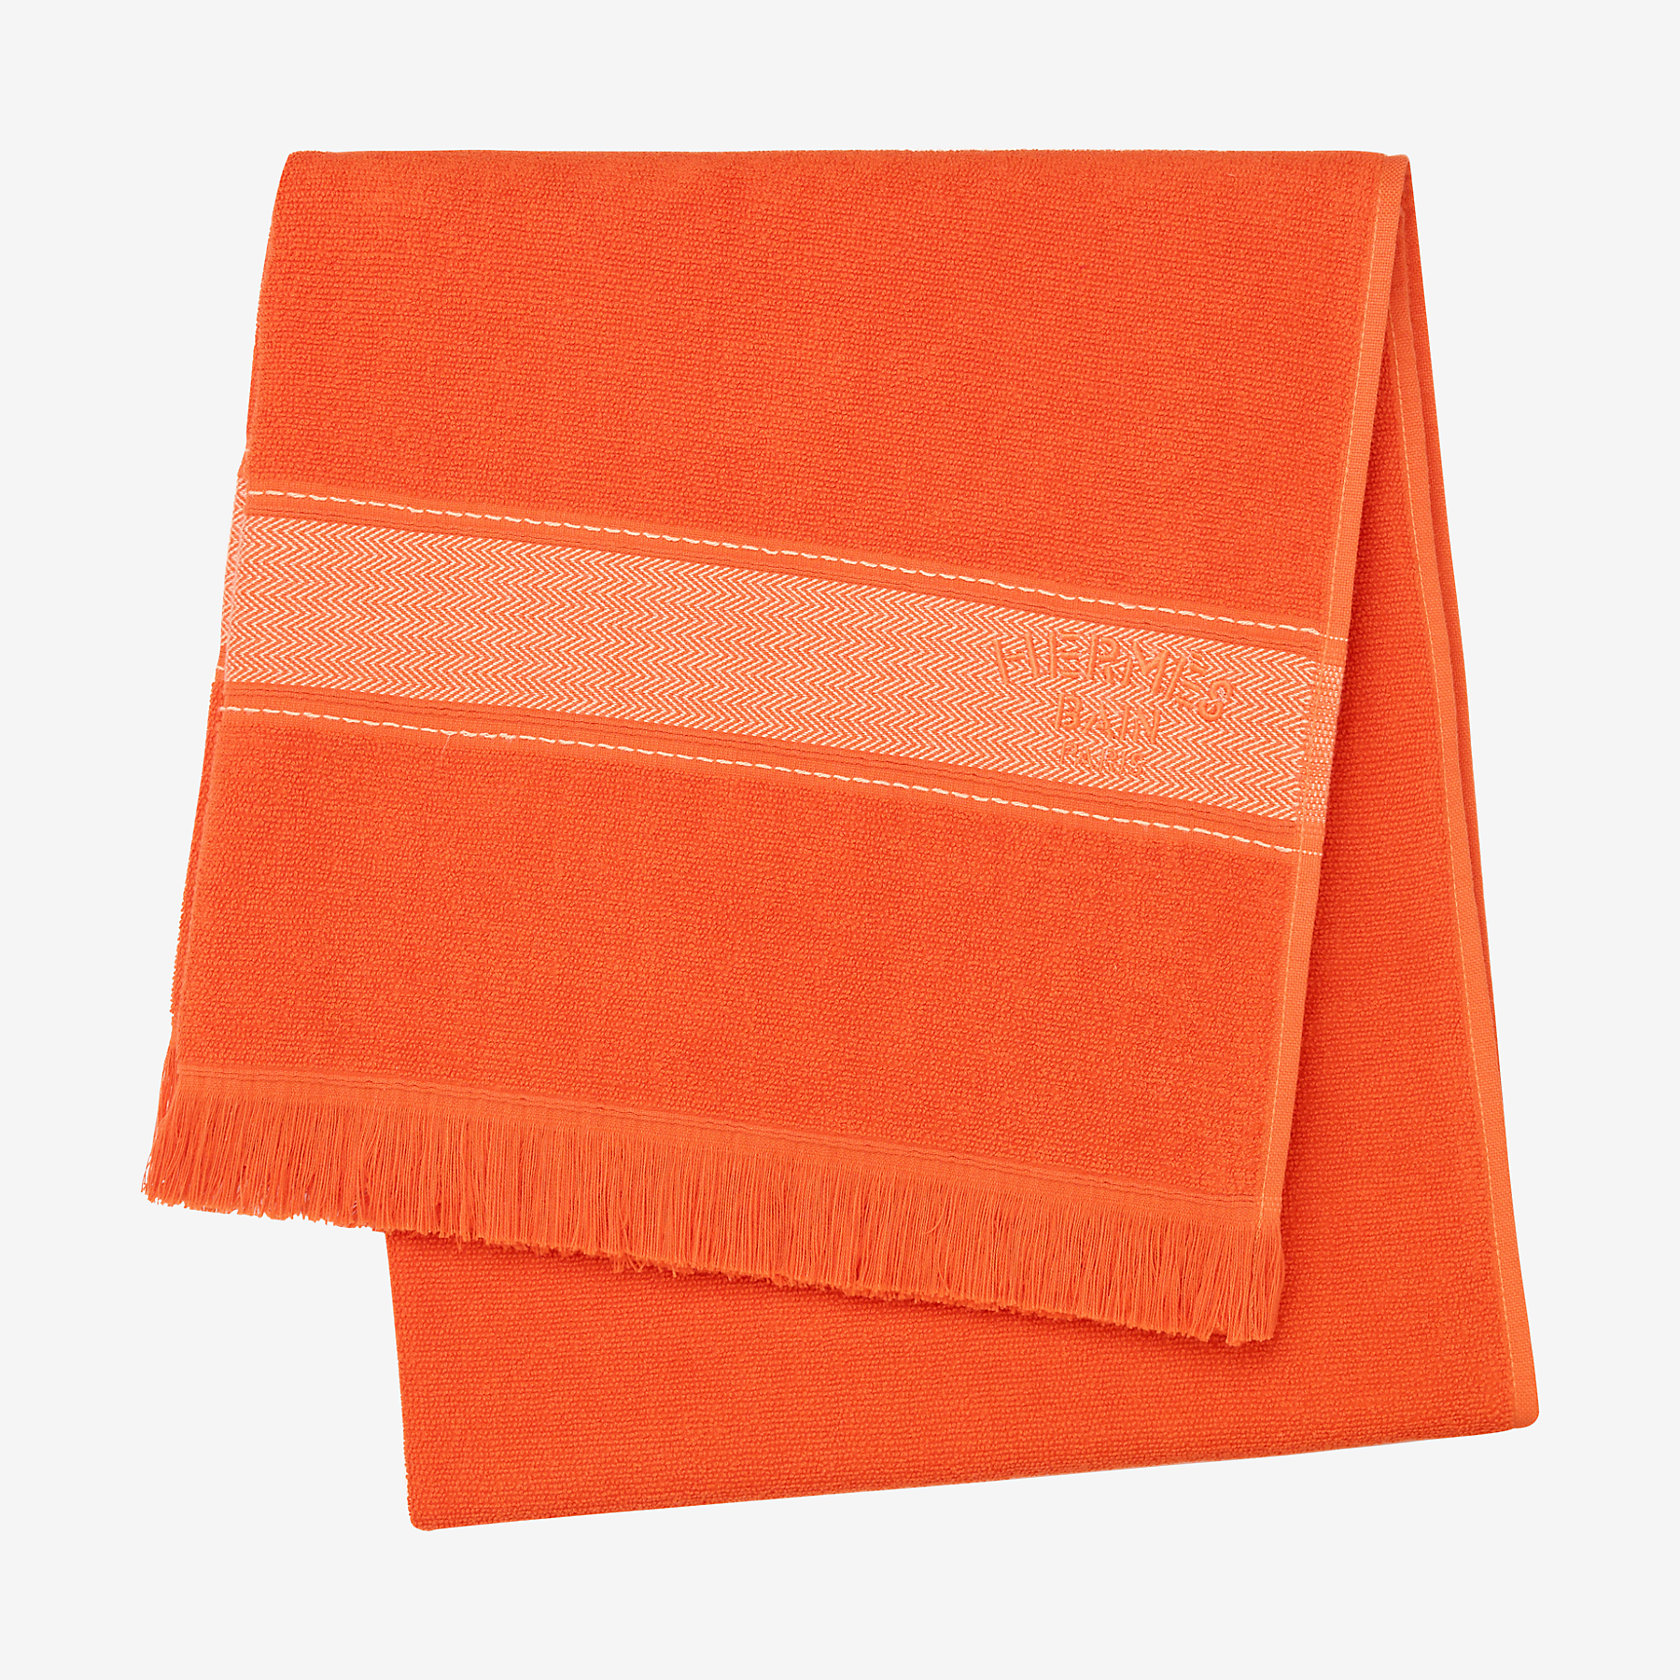 Small Towel: Yachting Beach Towel, Small Model